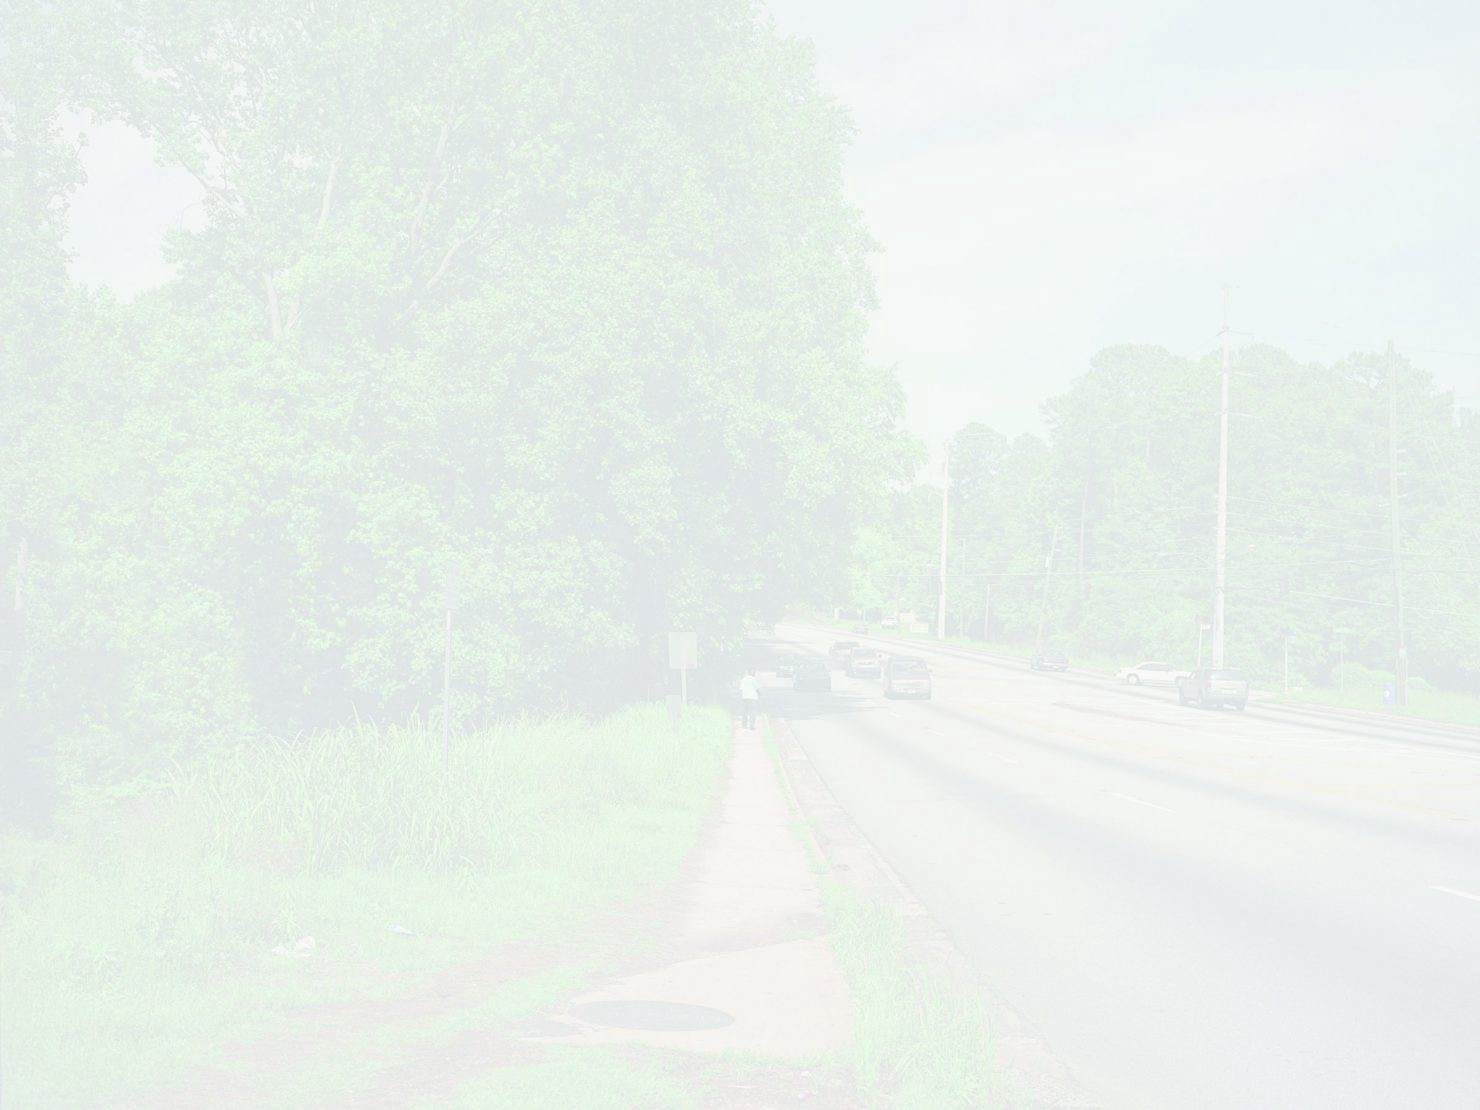 A road lined by trees and grass is barely visible through the hazy whiteness of the exposure of the photograph.